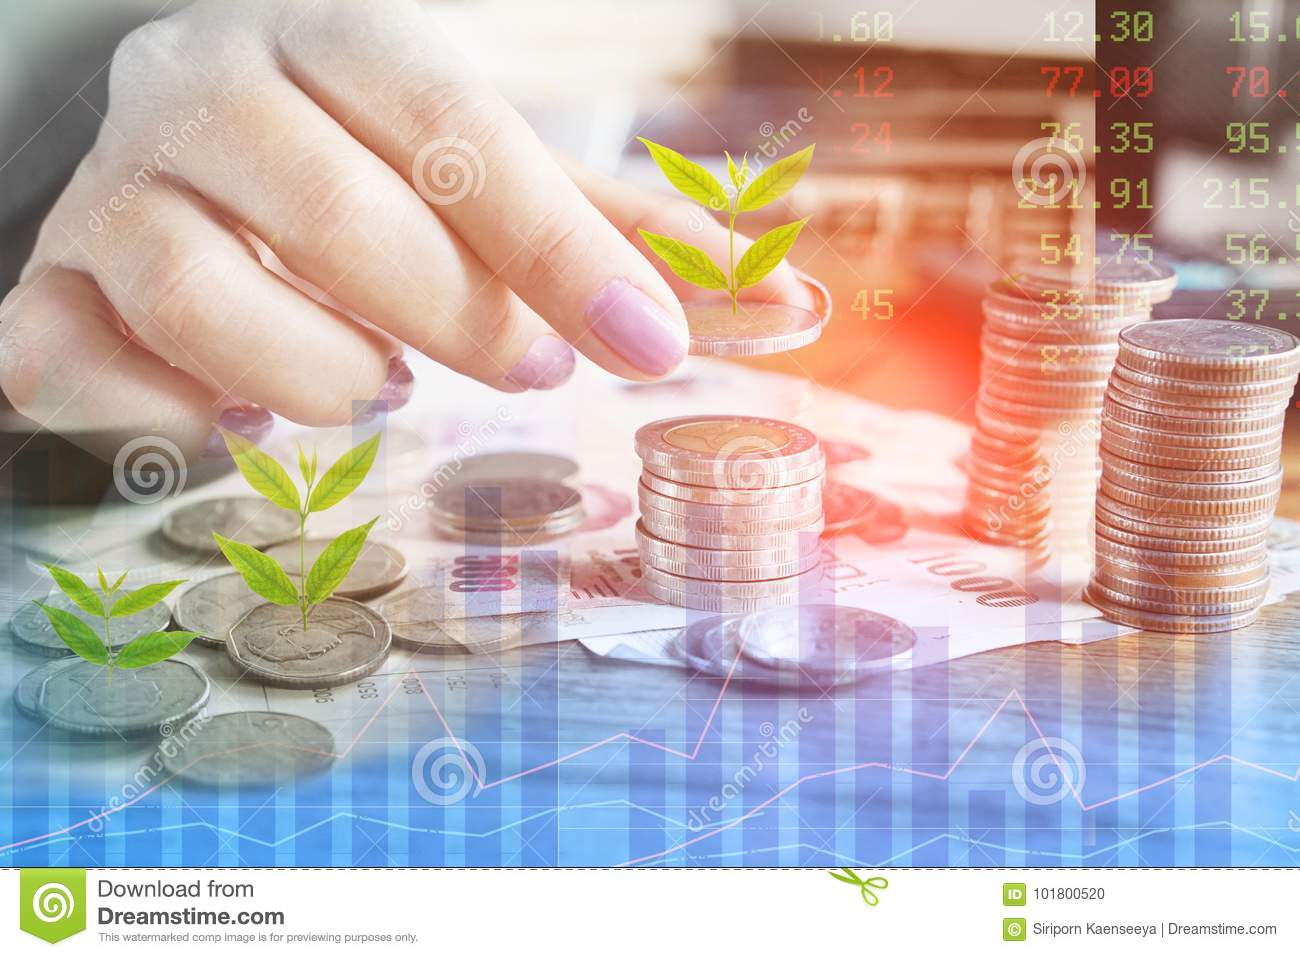 Business growth, investment,success concept with woman hand counting coin with tree growing